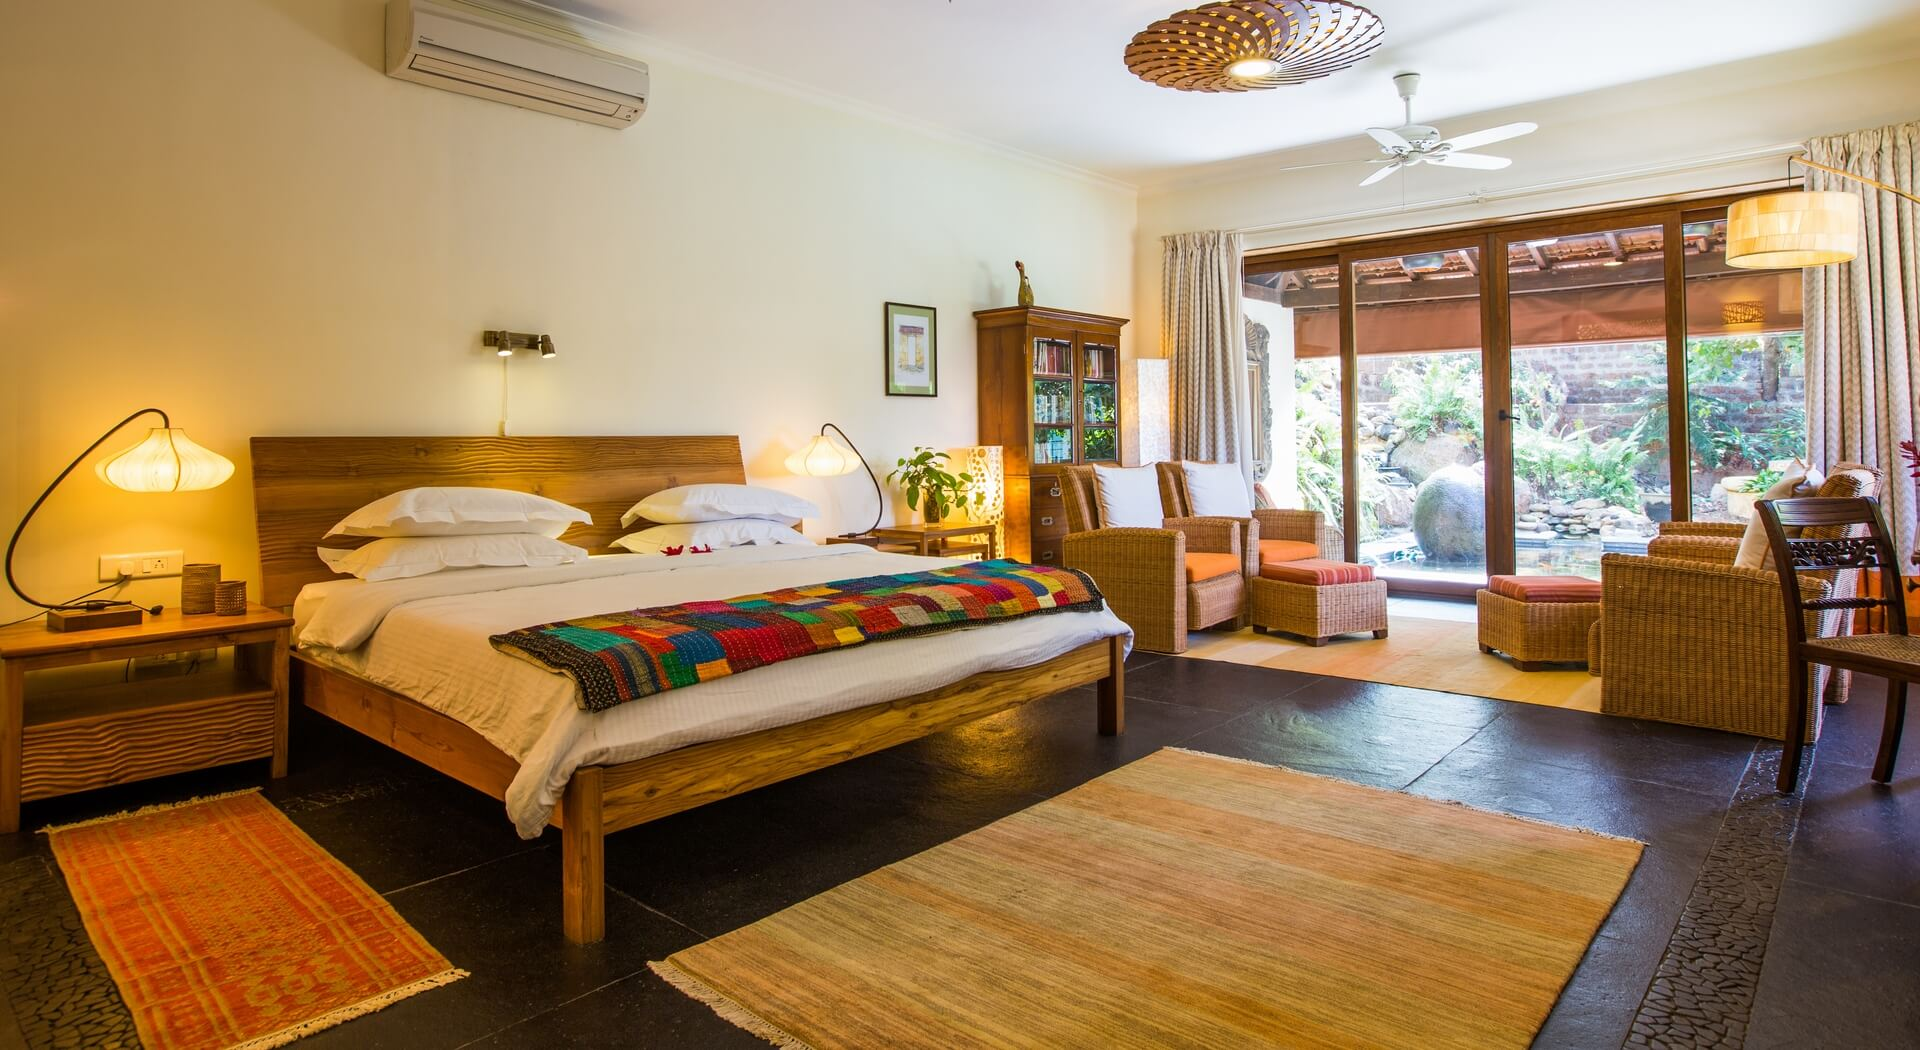 Luxury rental villa in Goa